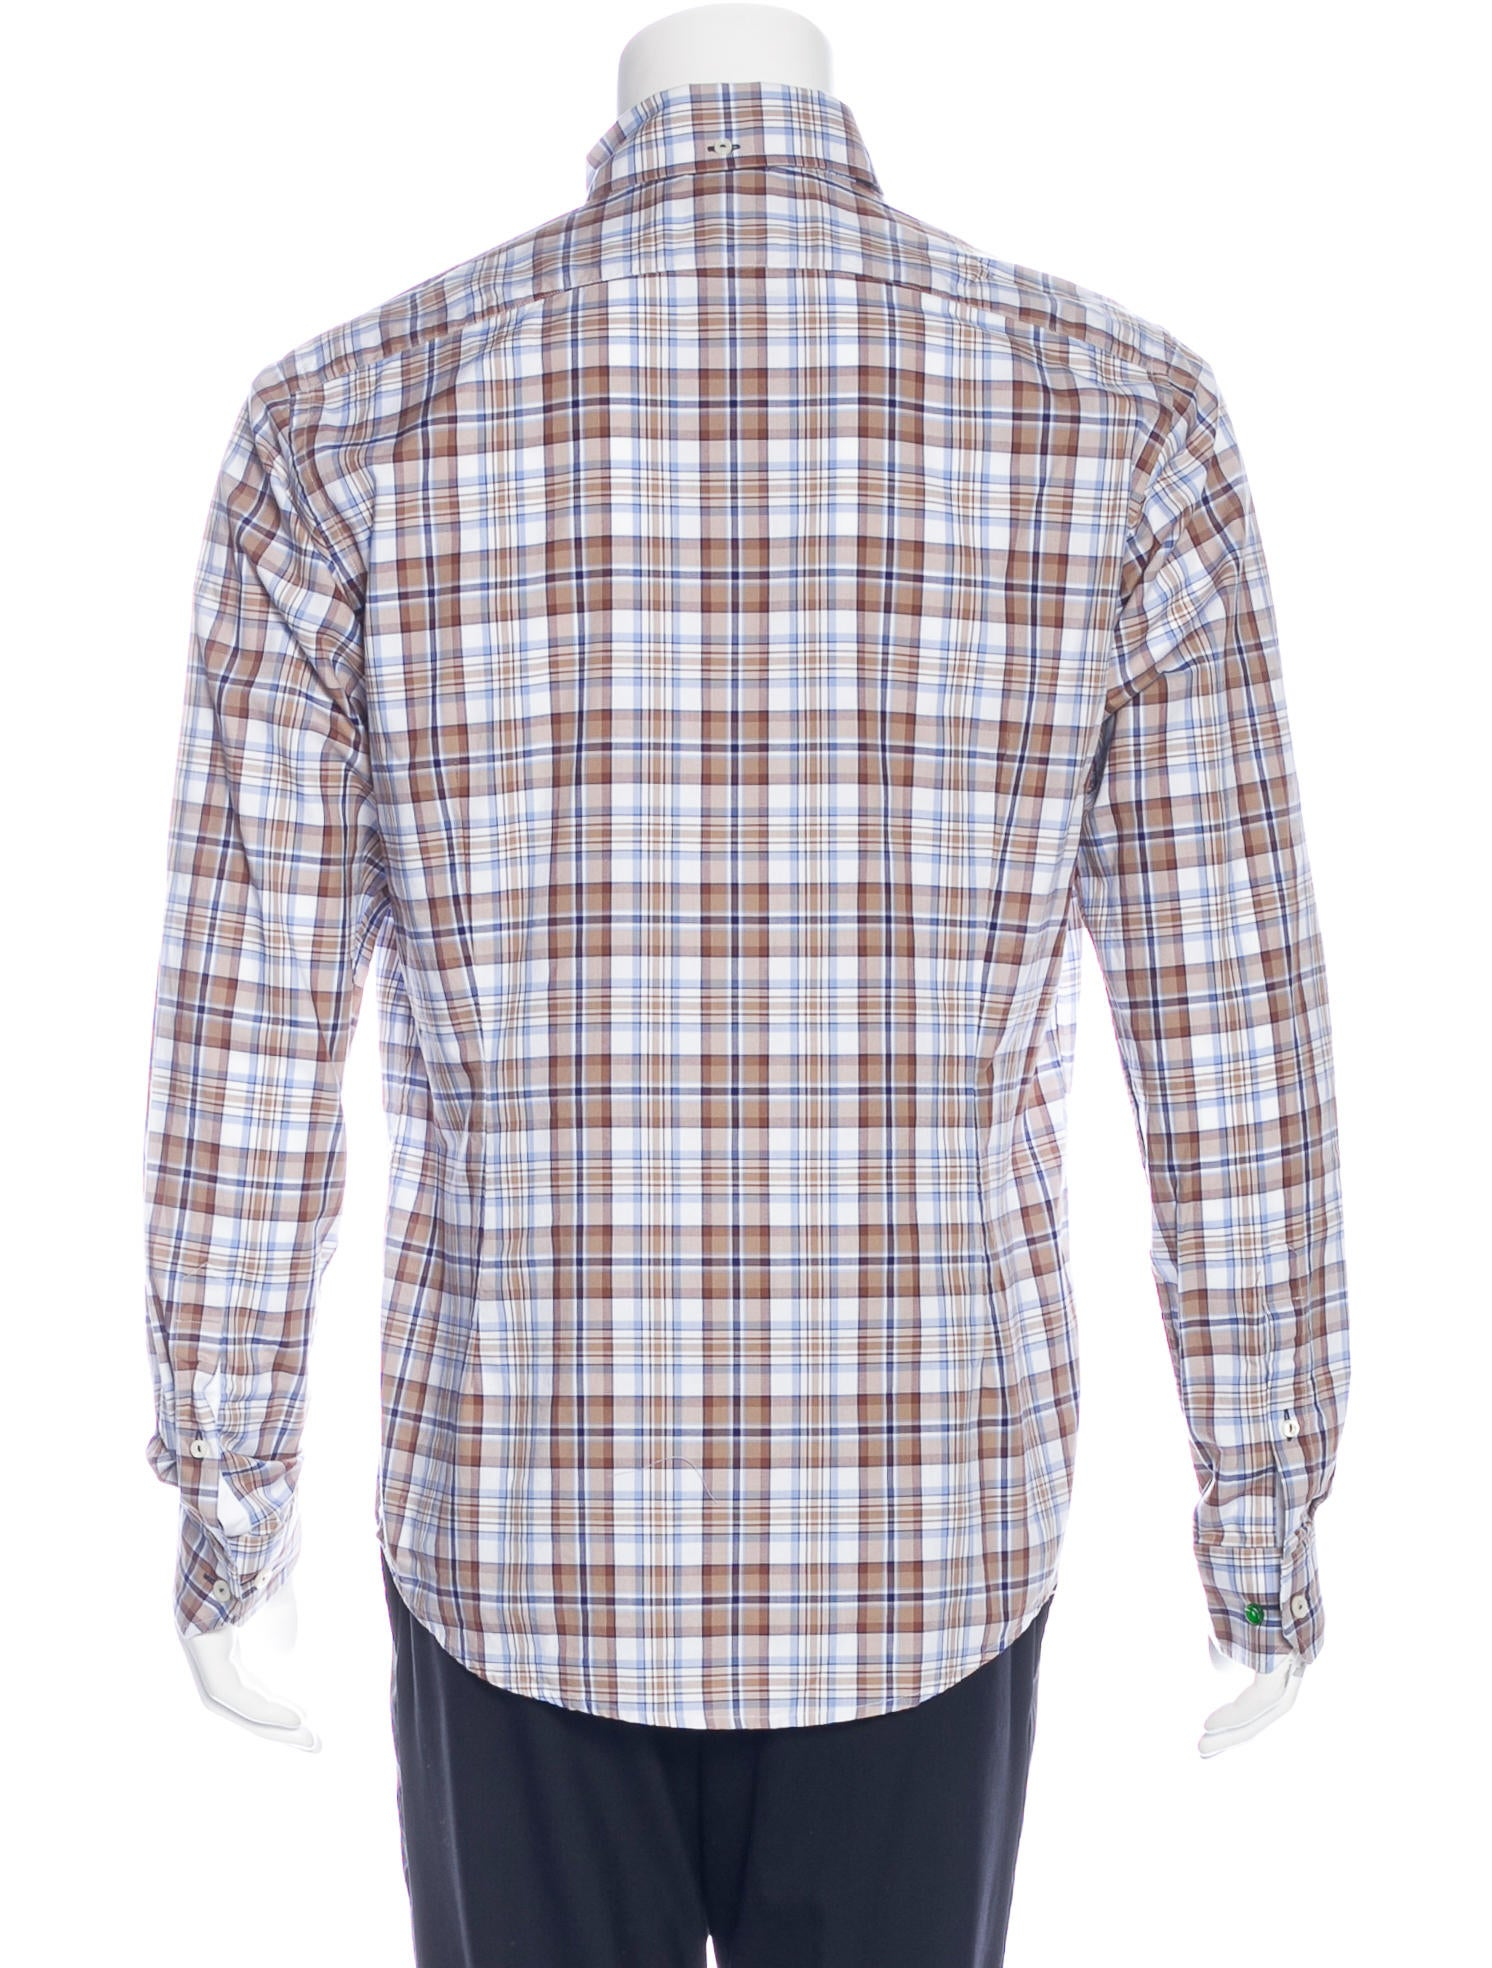 Eton Plaid Long Sleeve Shirt W Tags Clothing Etn20089